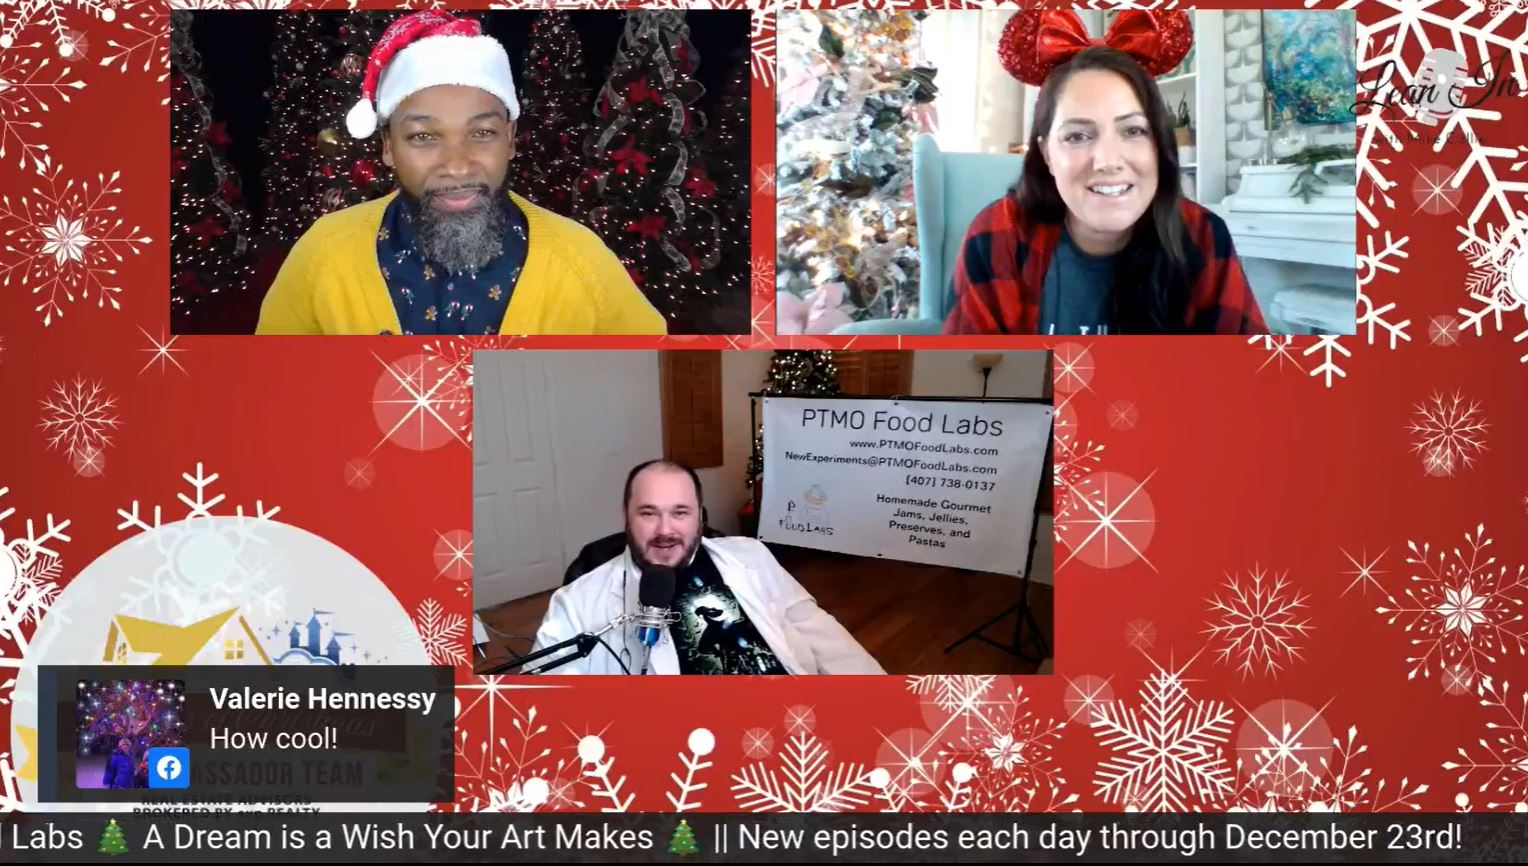 12 Days of Christmas Cast Member Marketplace All Things with Purpose Sarah Lemp 3